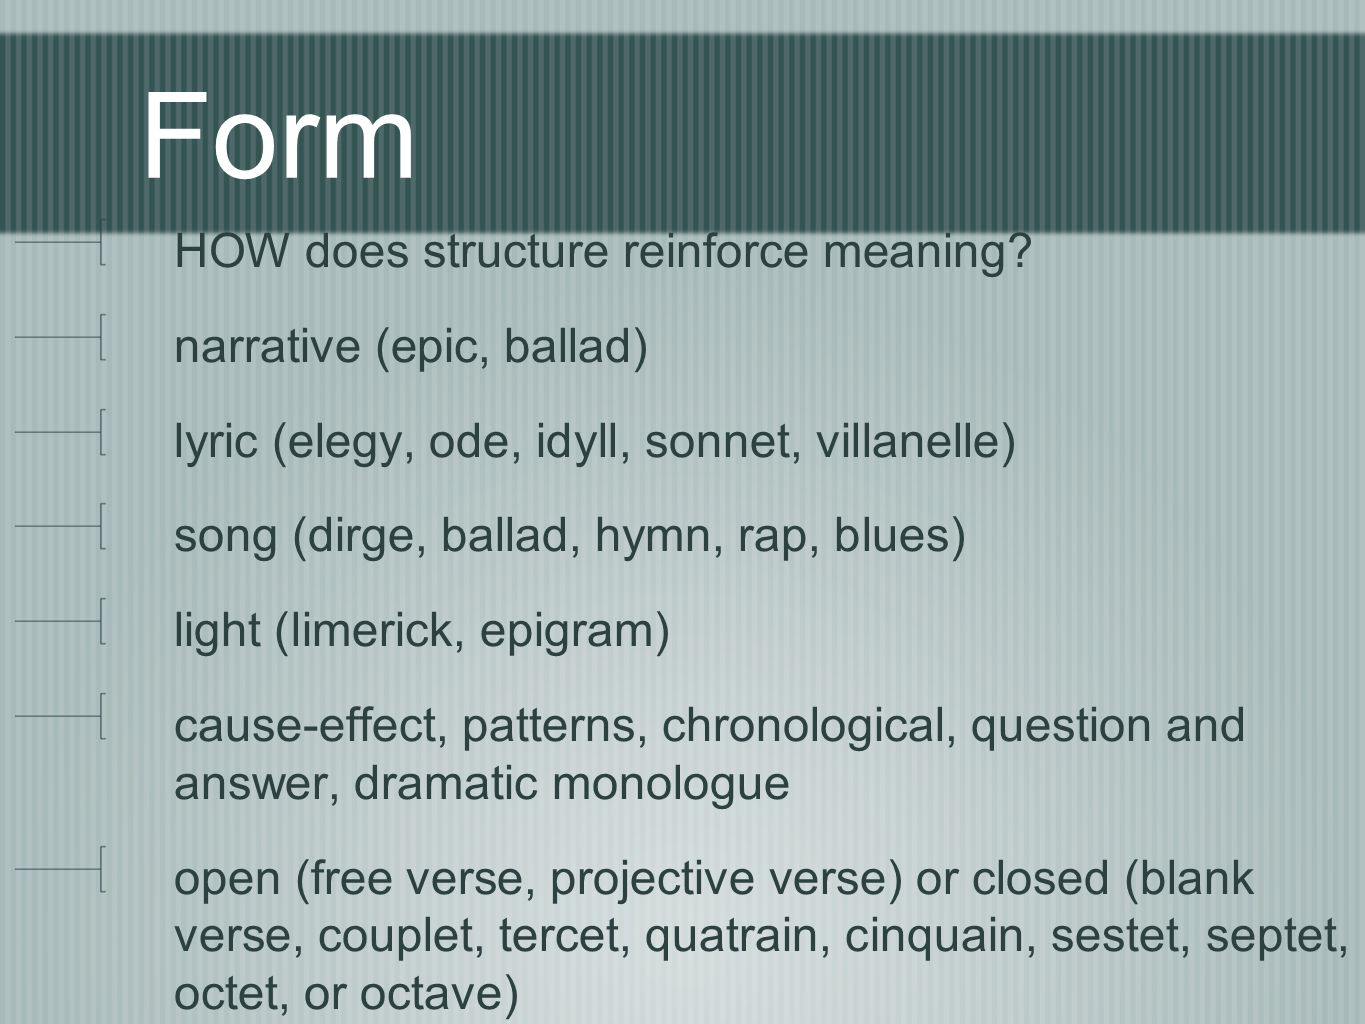 Form HOW does structure reinforce meaning narrative (epic, ballad)